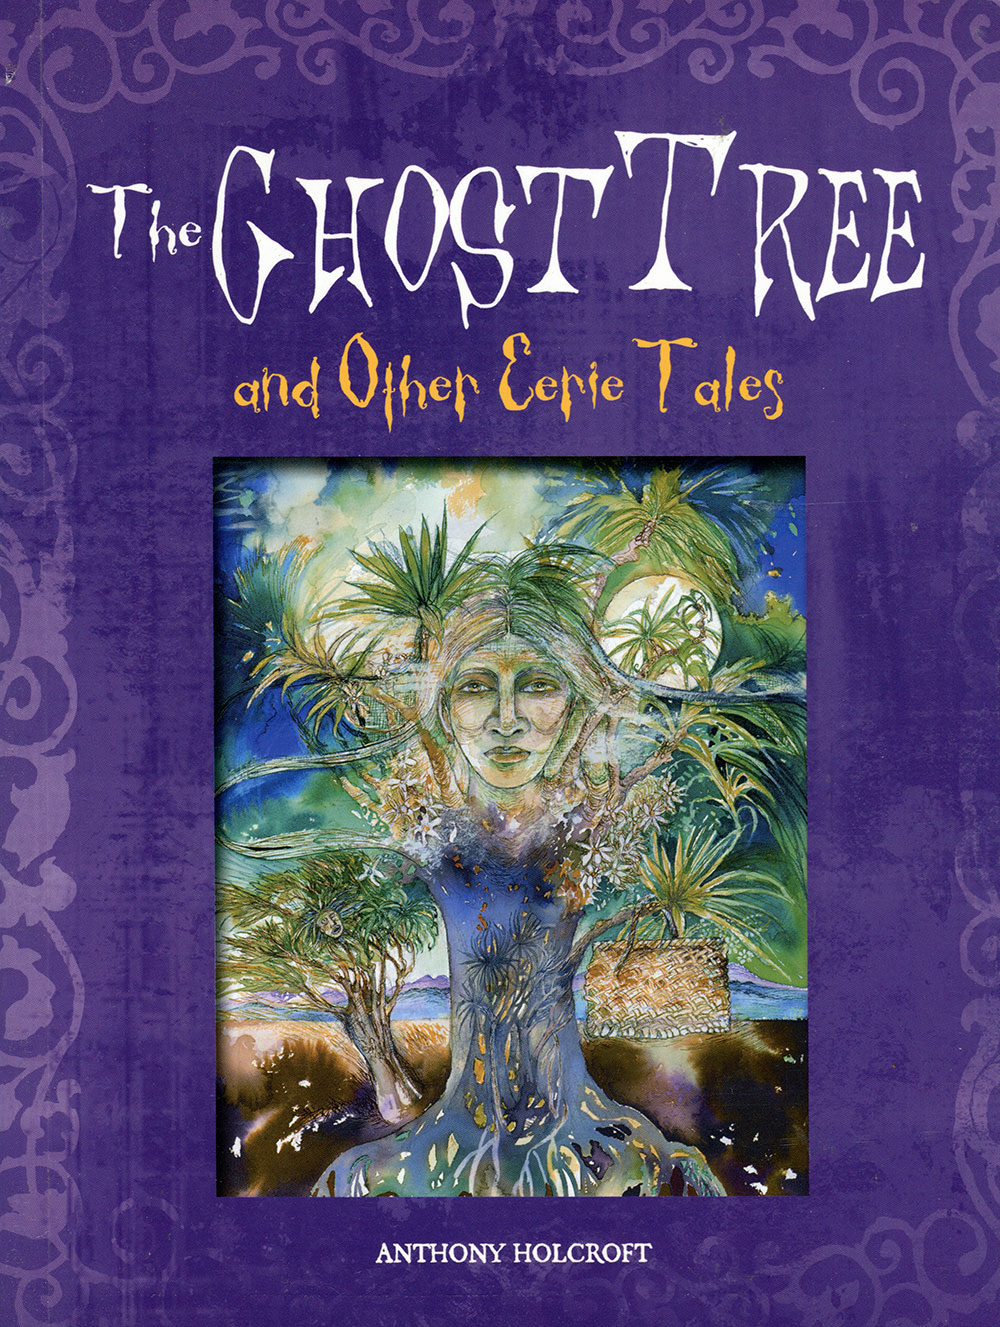 Link to Anthony Holcroft's story collection, The Ghost Tree.